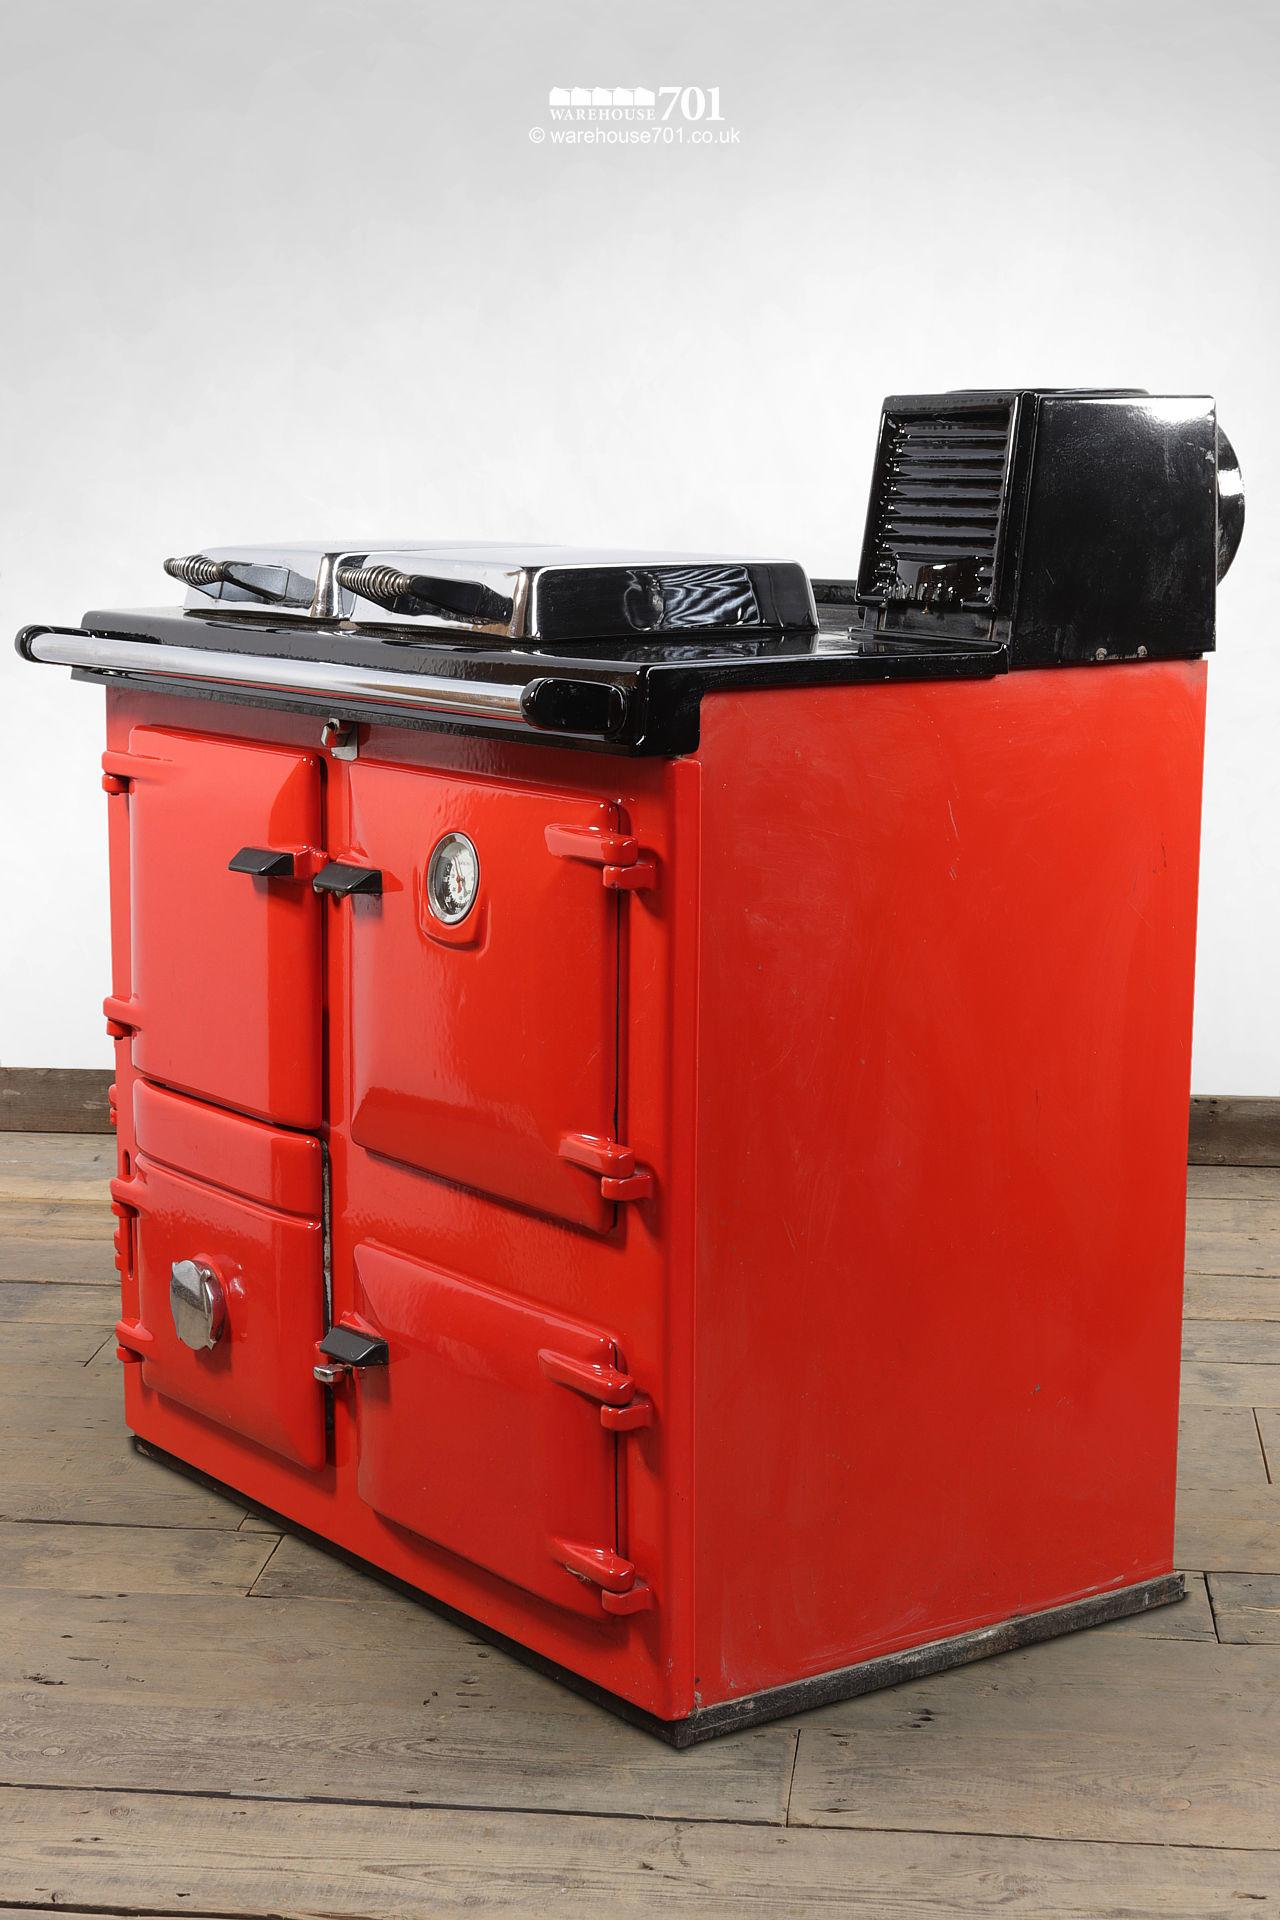 Fine Used Red Rayburn Nouvelle Cooker or Stove #3